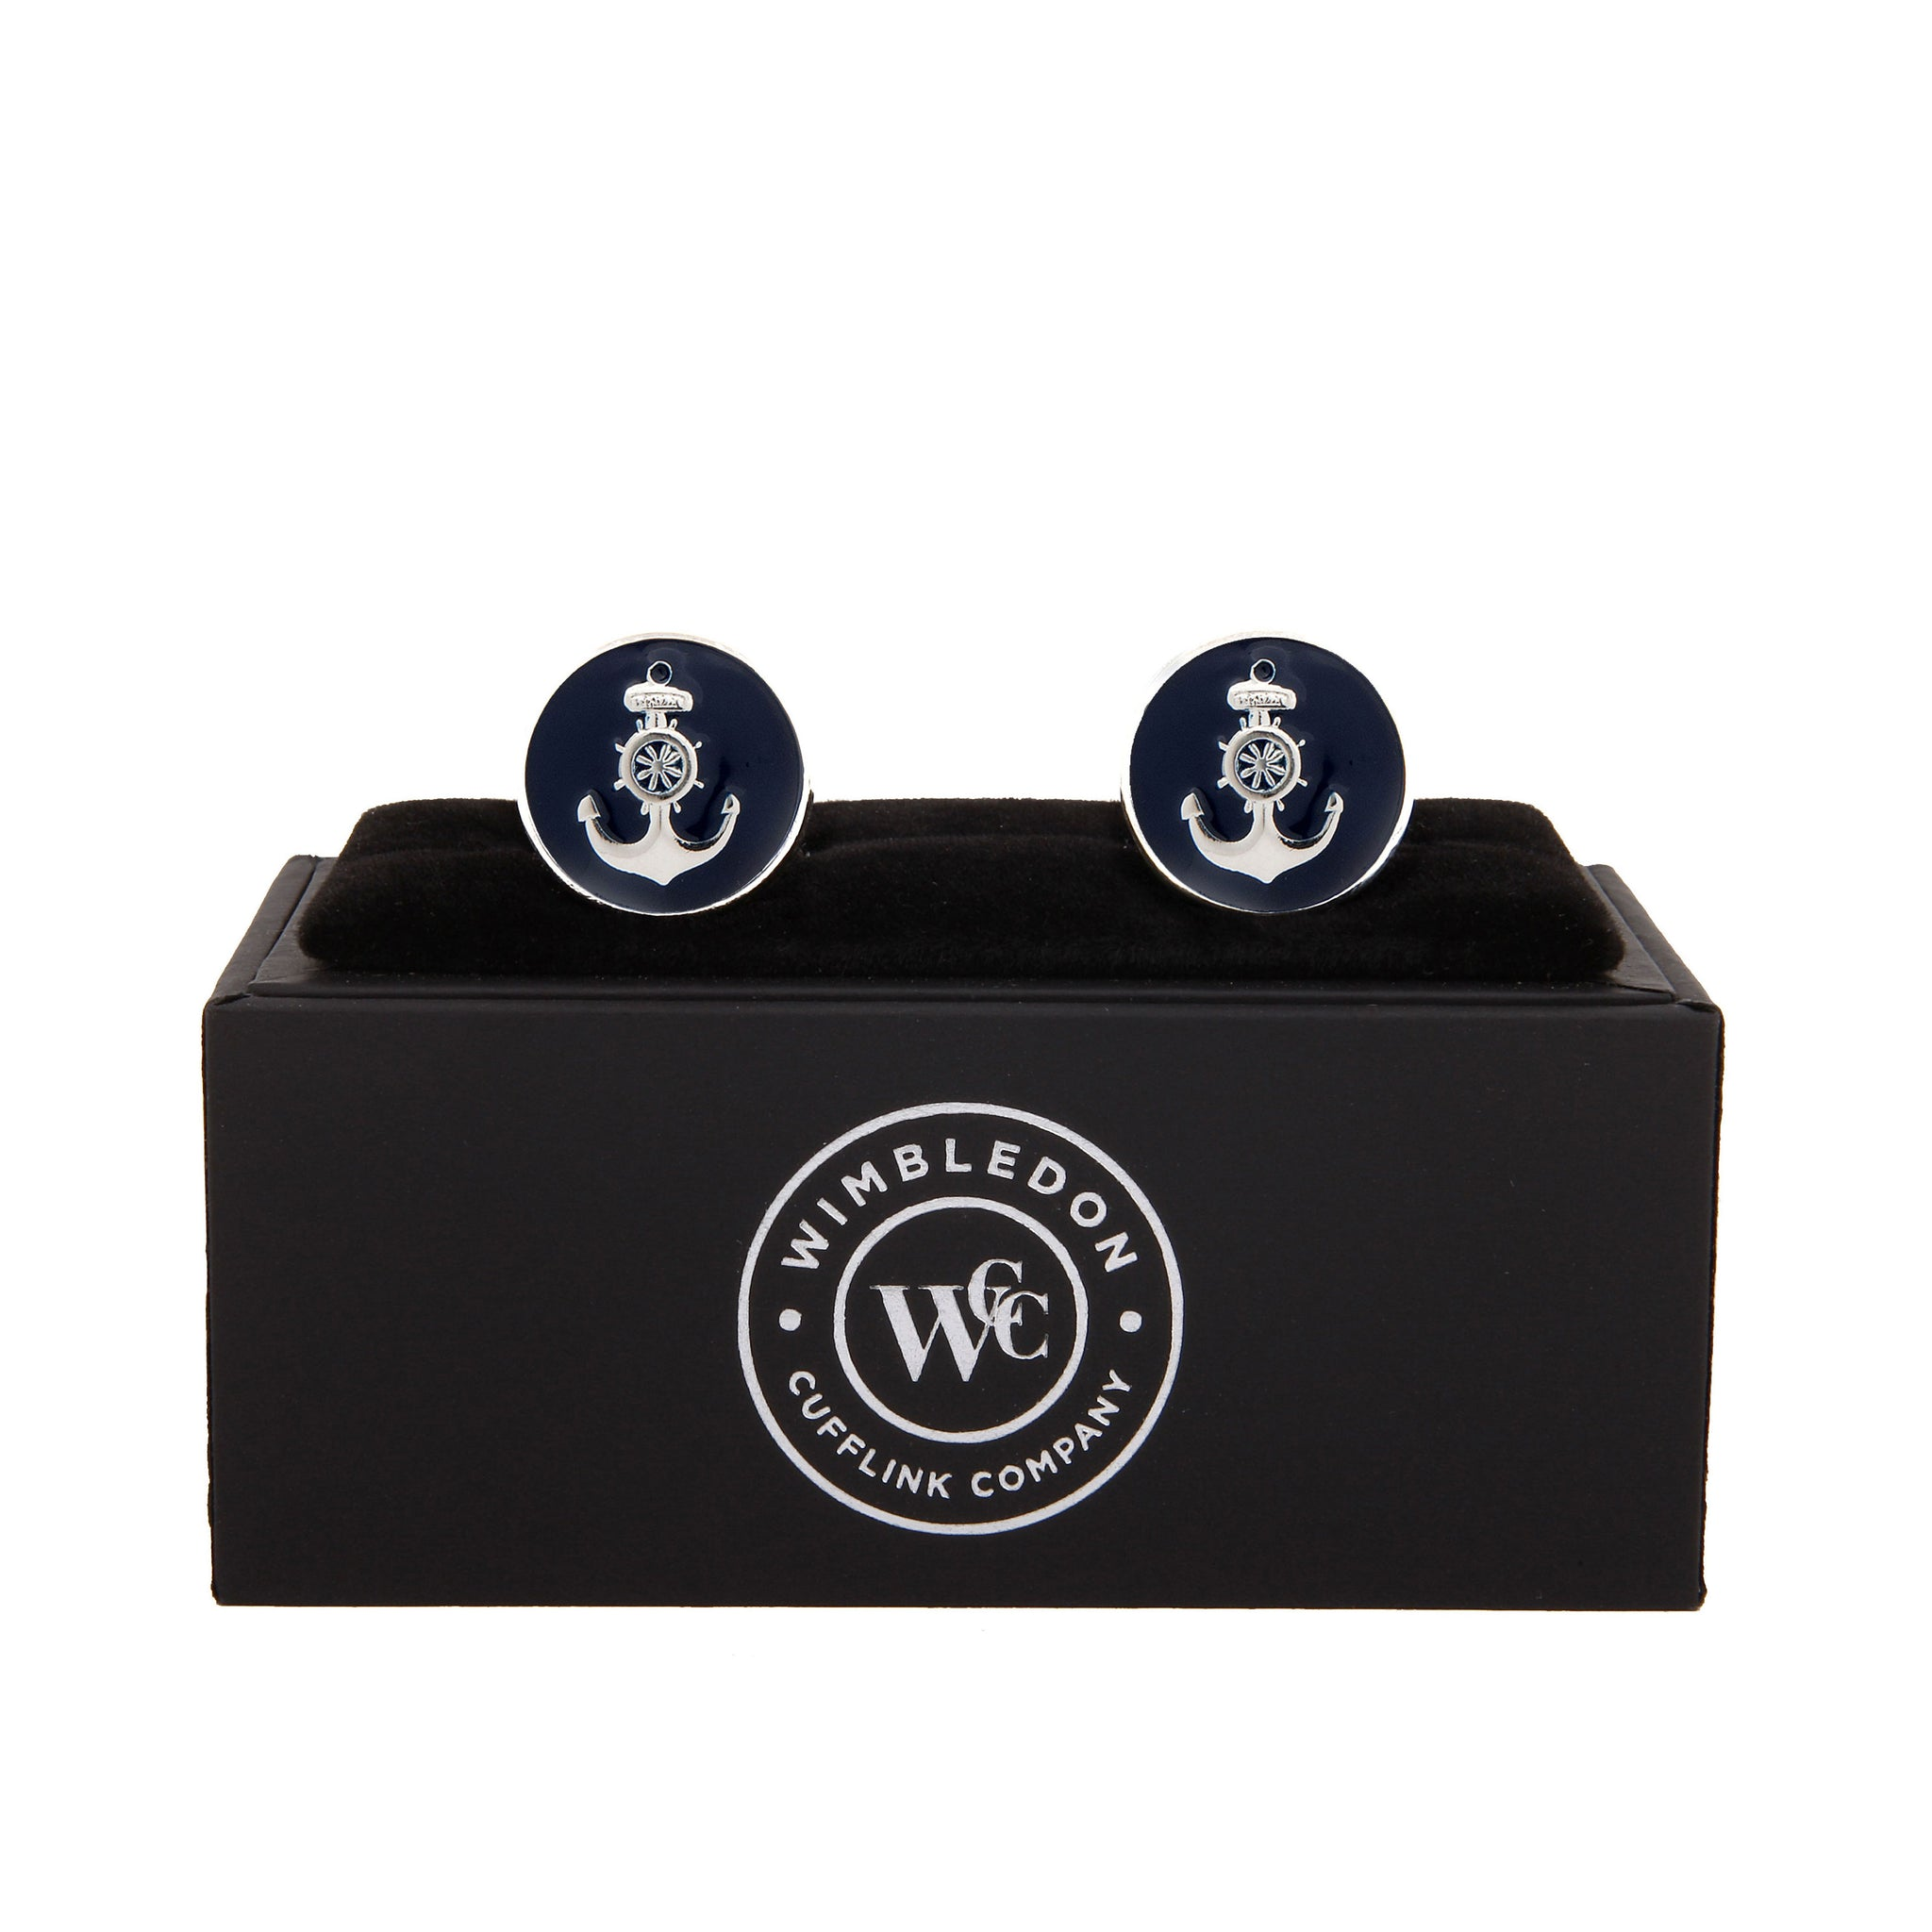 The Ship's Anchor Cufflink